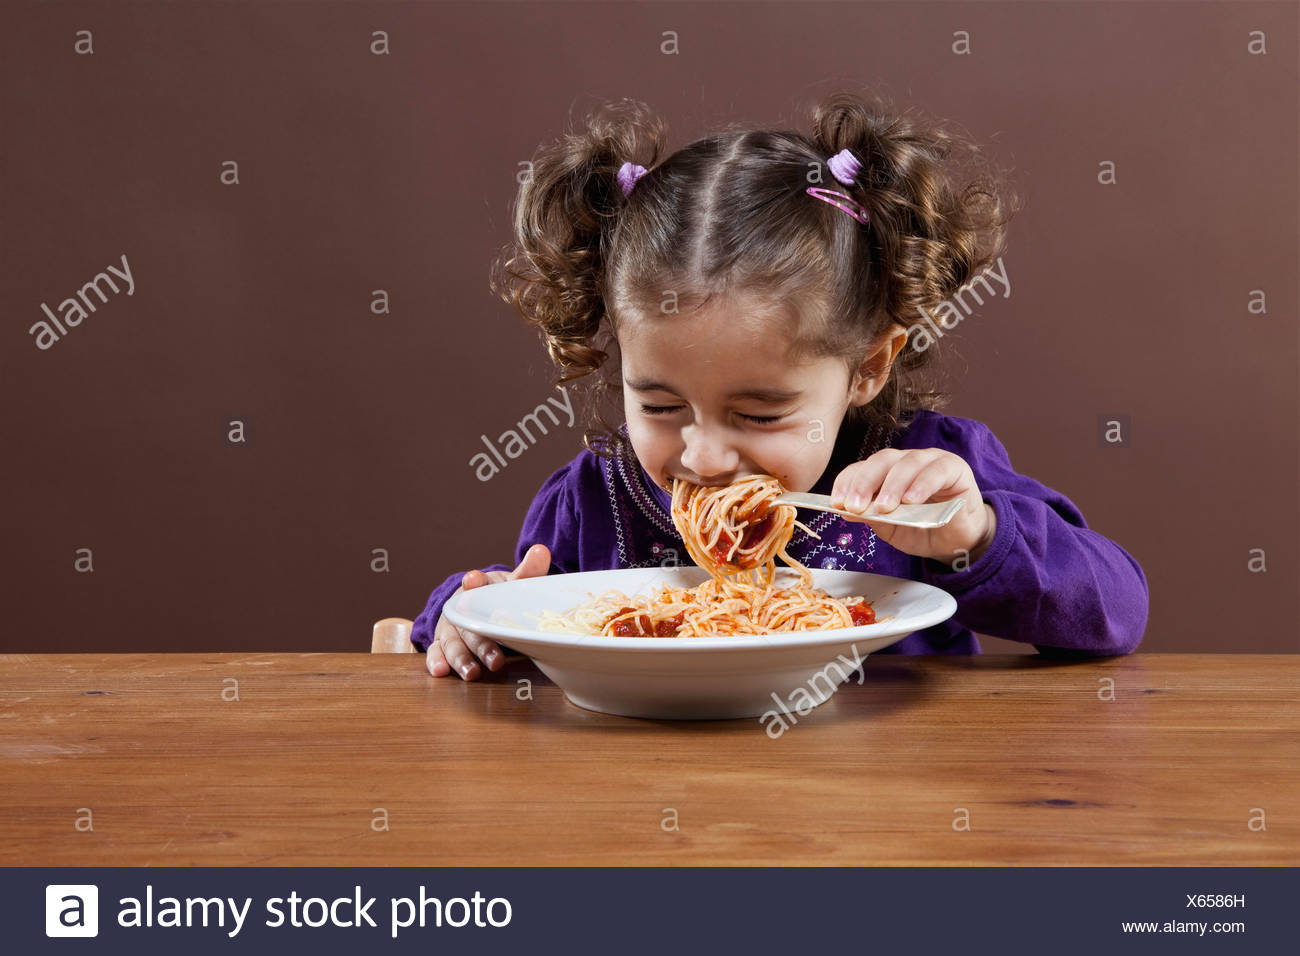 A young girl with her eyes shut tightly eating spaghetti, studio shot - Stock Image